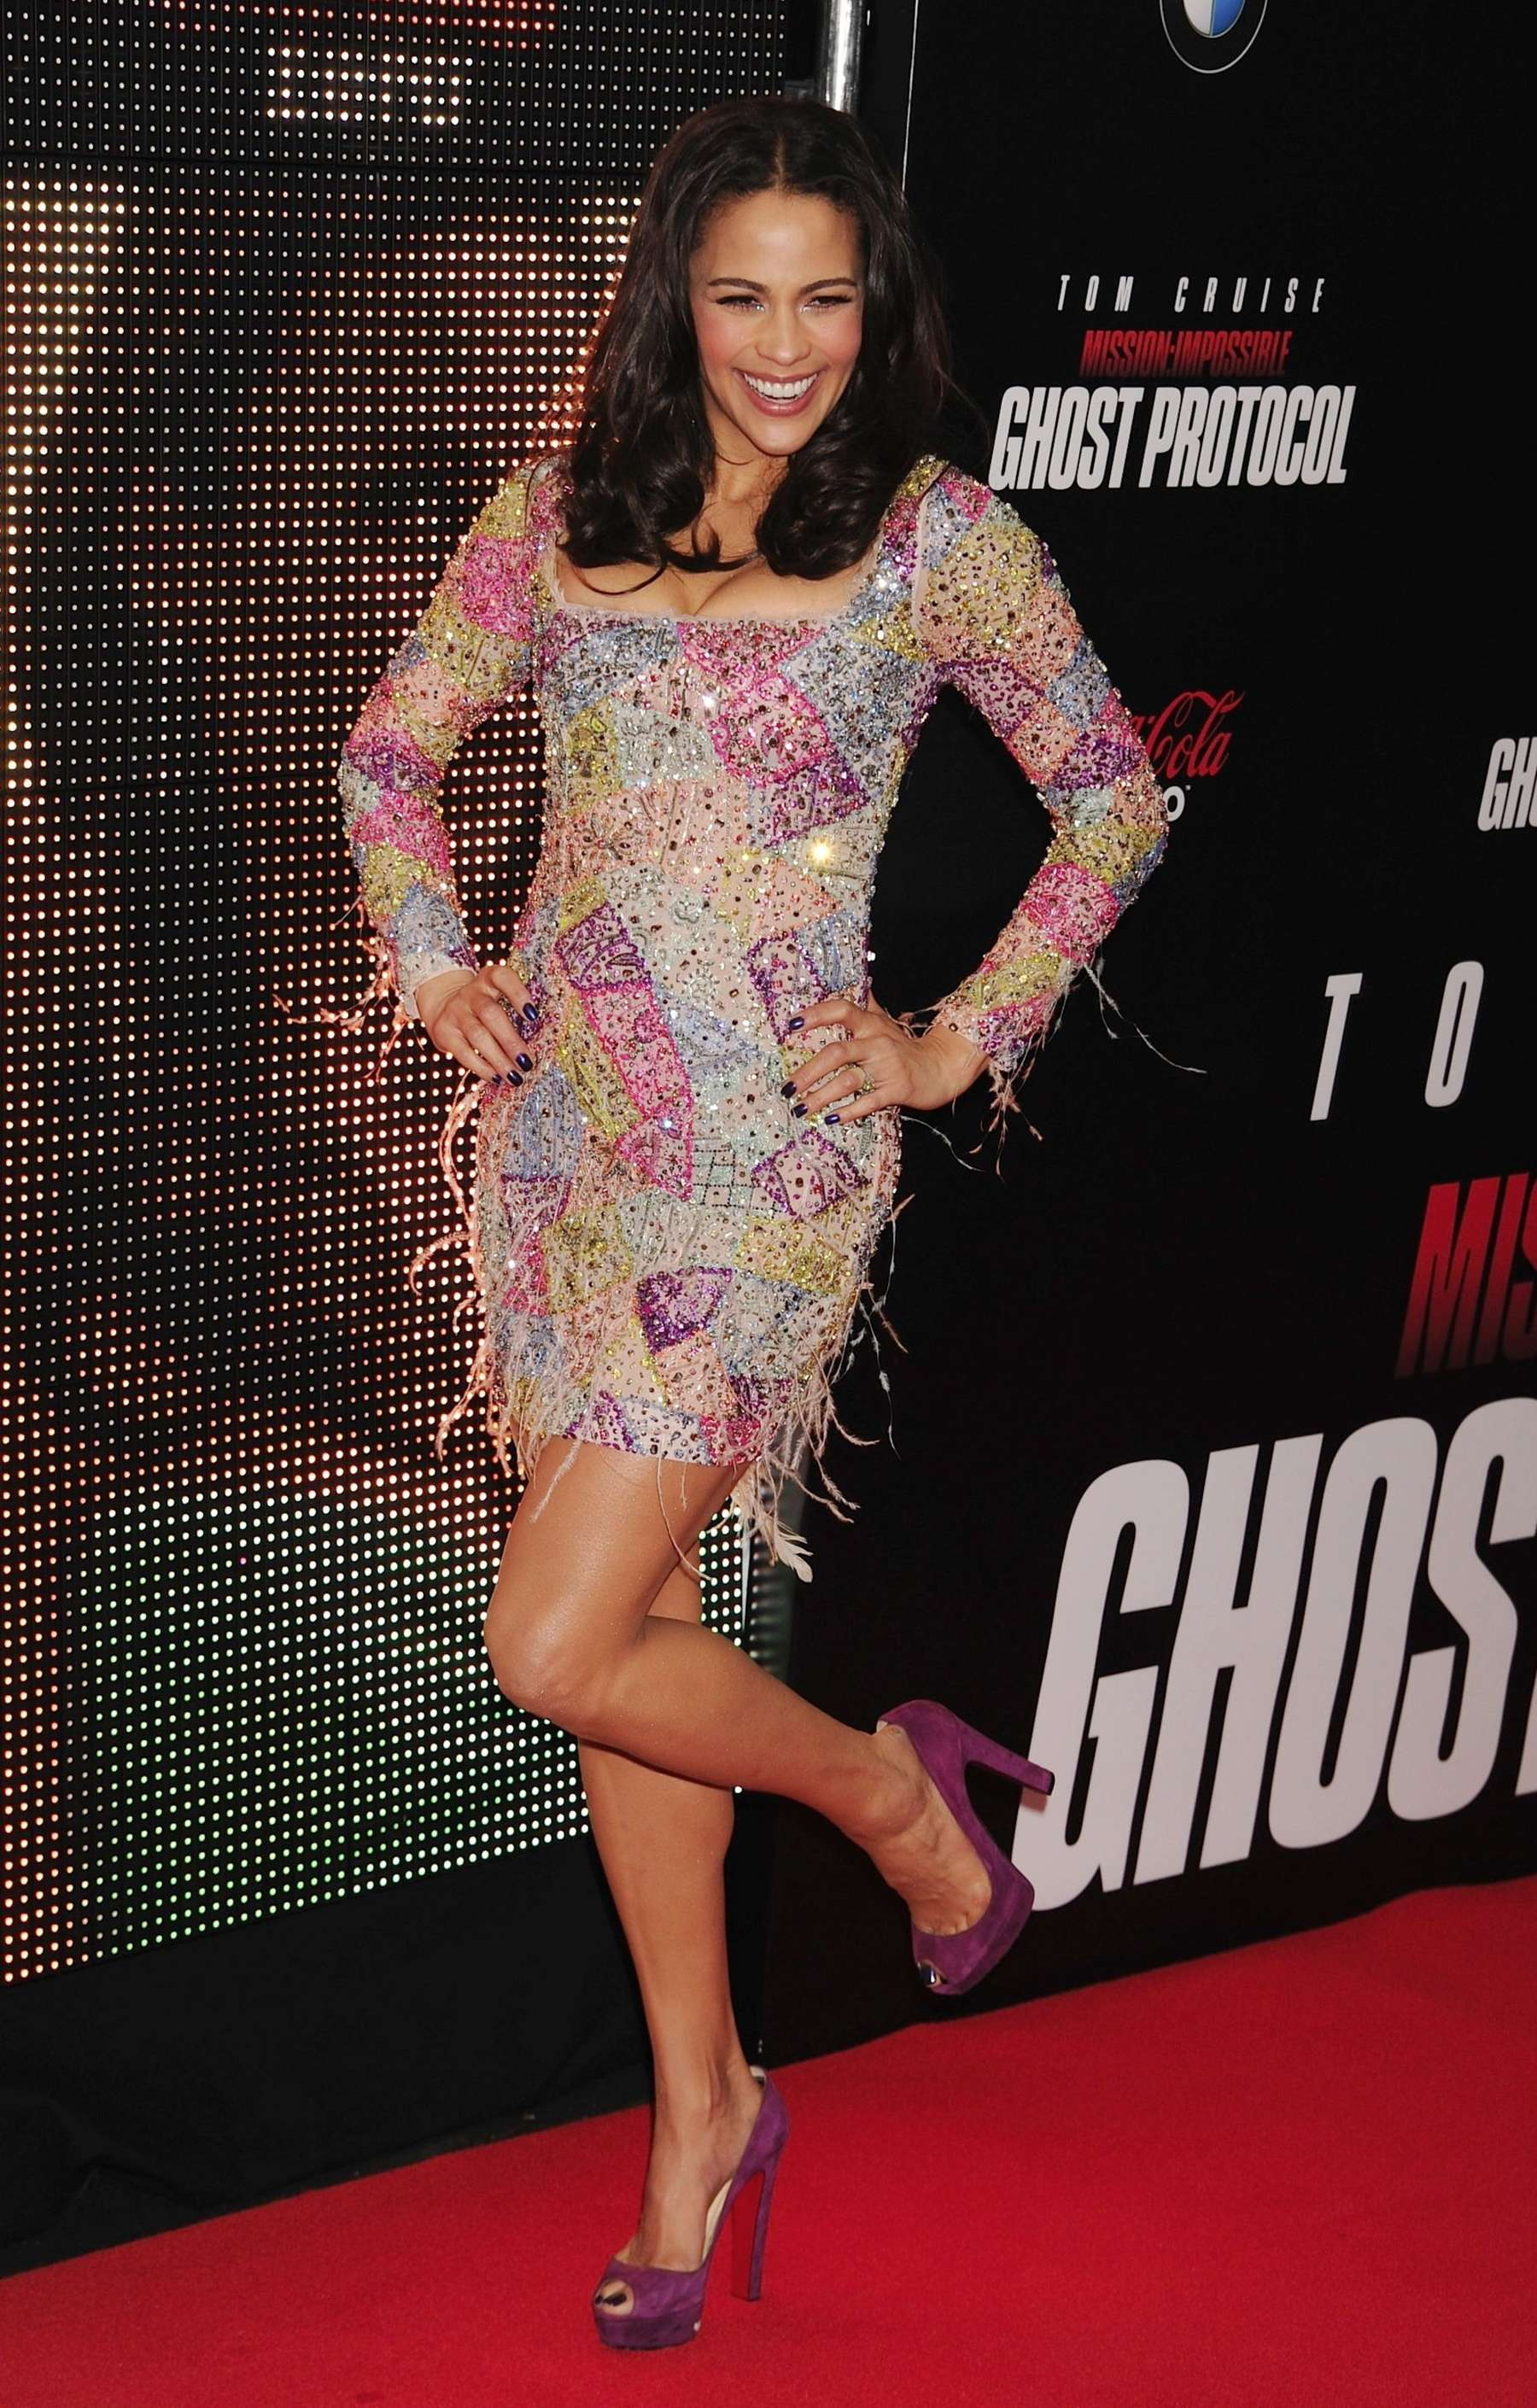 Paula Patton Hot At Mission Impossible Ghost Premiere 07